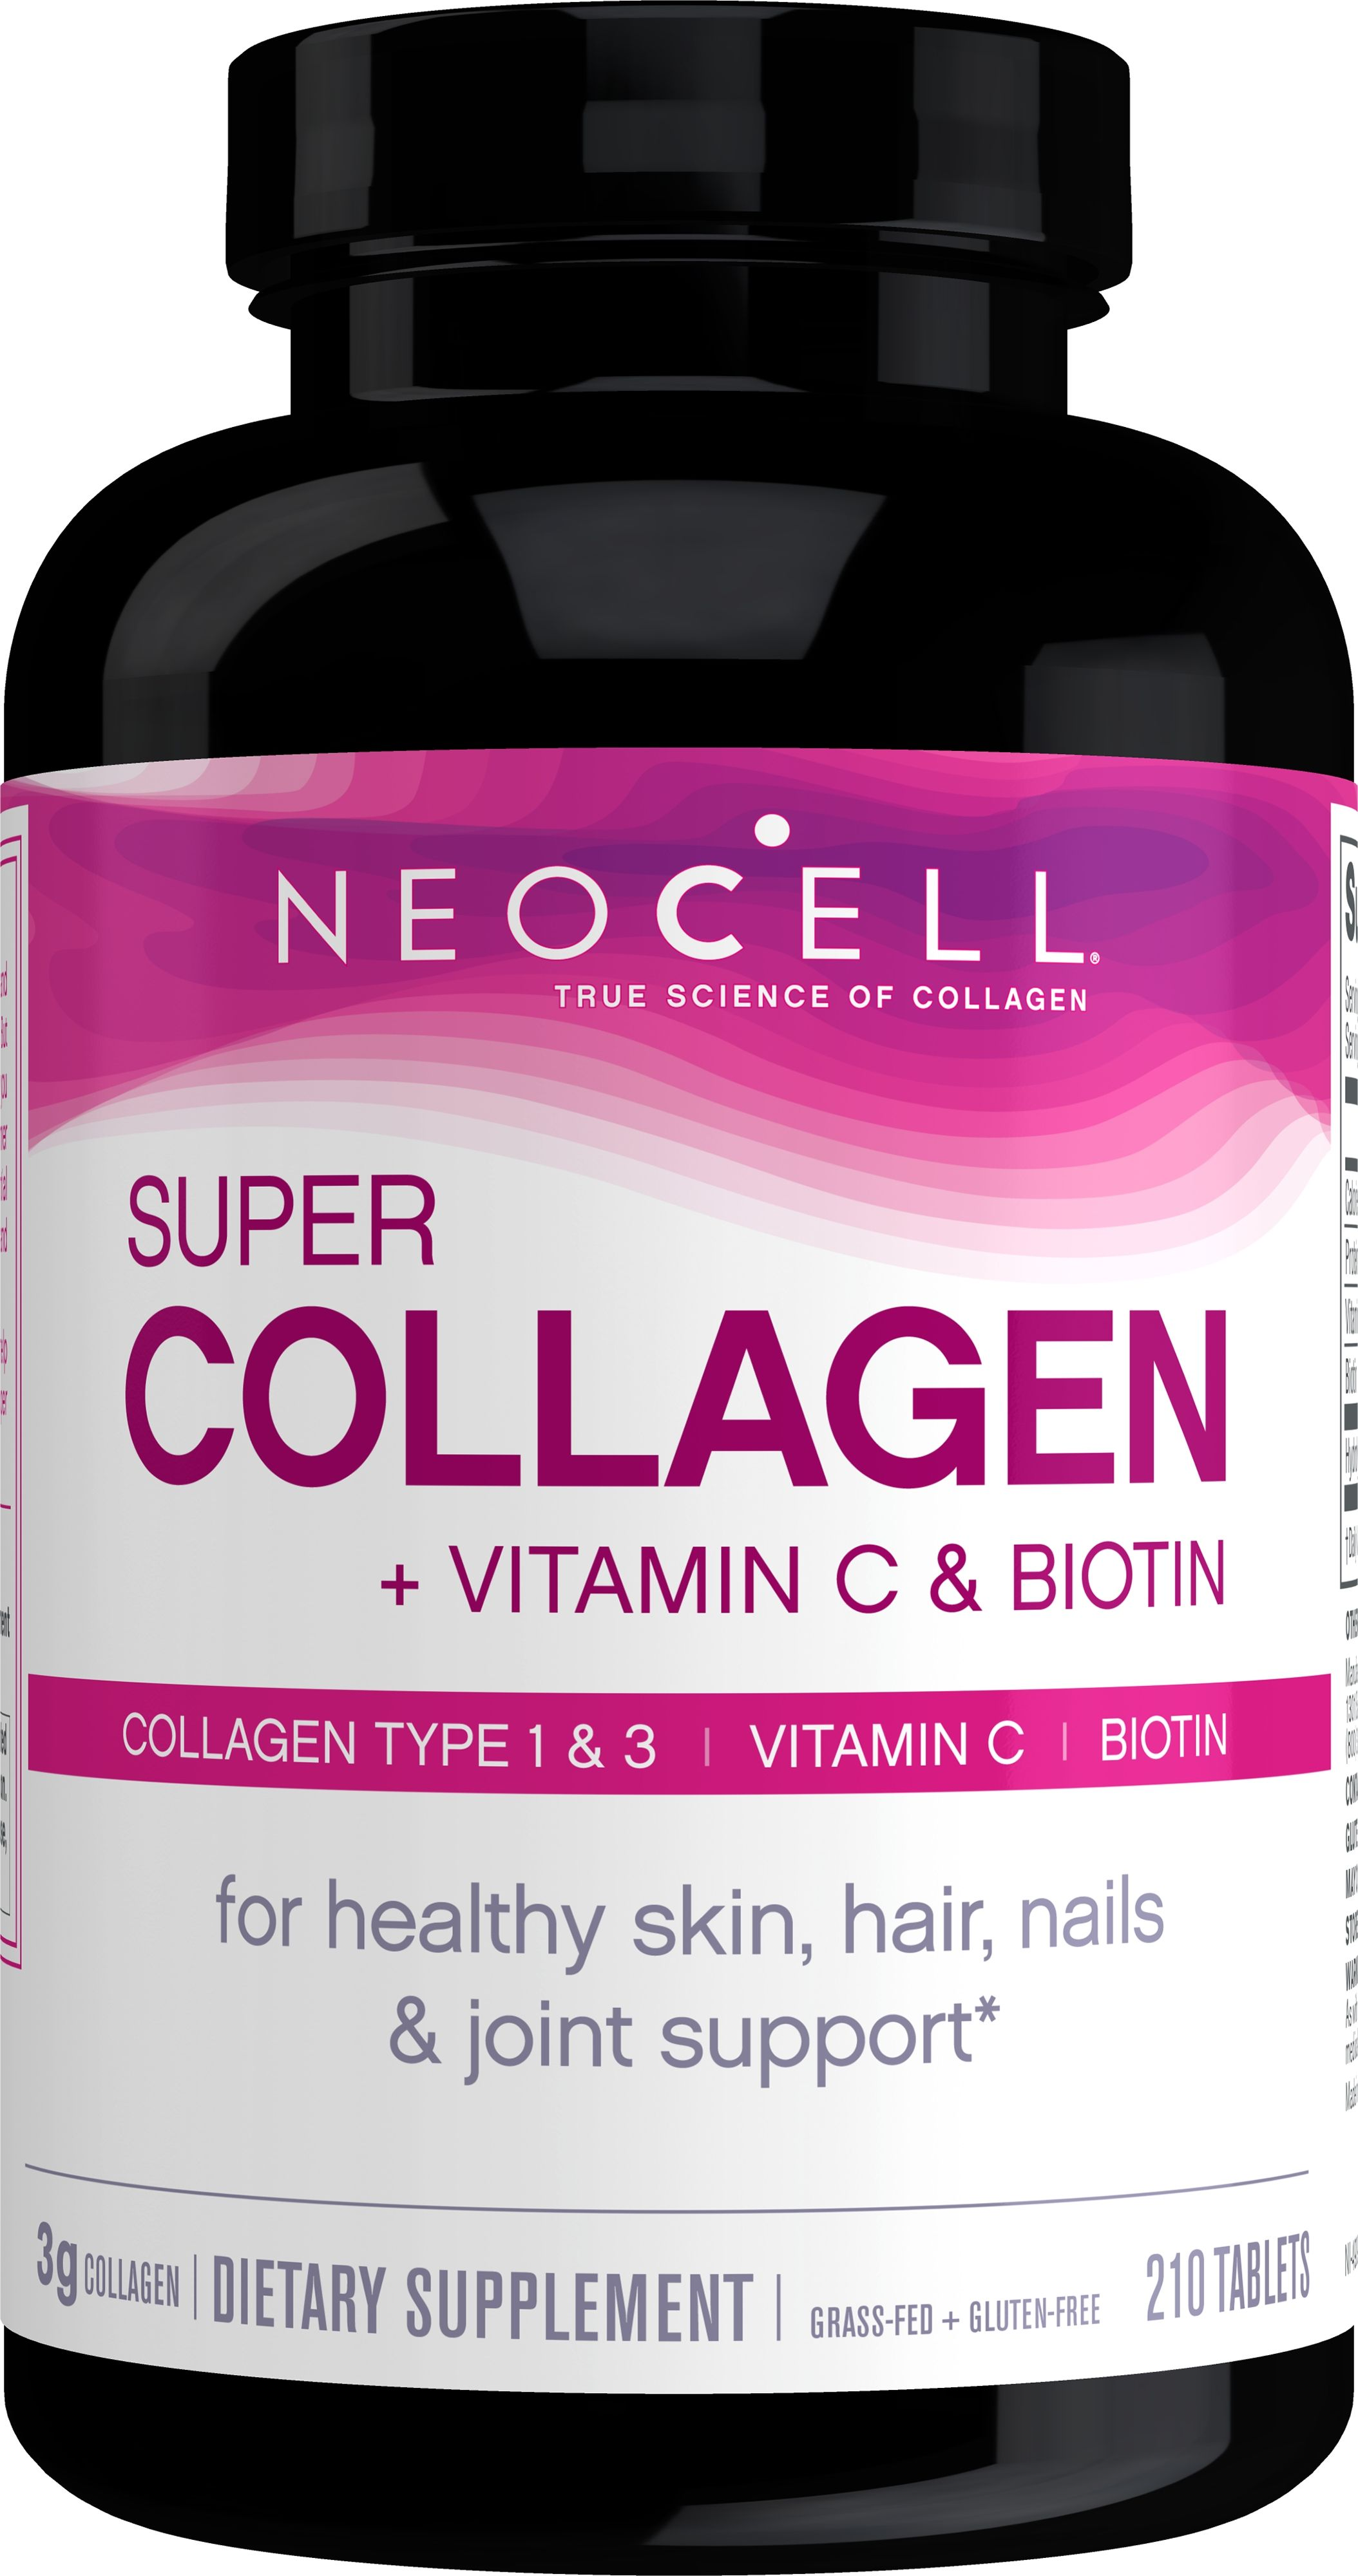 Neocell Super Collagen C 6 000mg Collagen Types 1 3 Plus Vitamin C 210 Tablets Walmart Com Neocell Super Collagen Tongue Health Nail Health